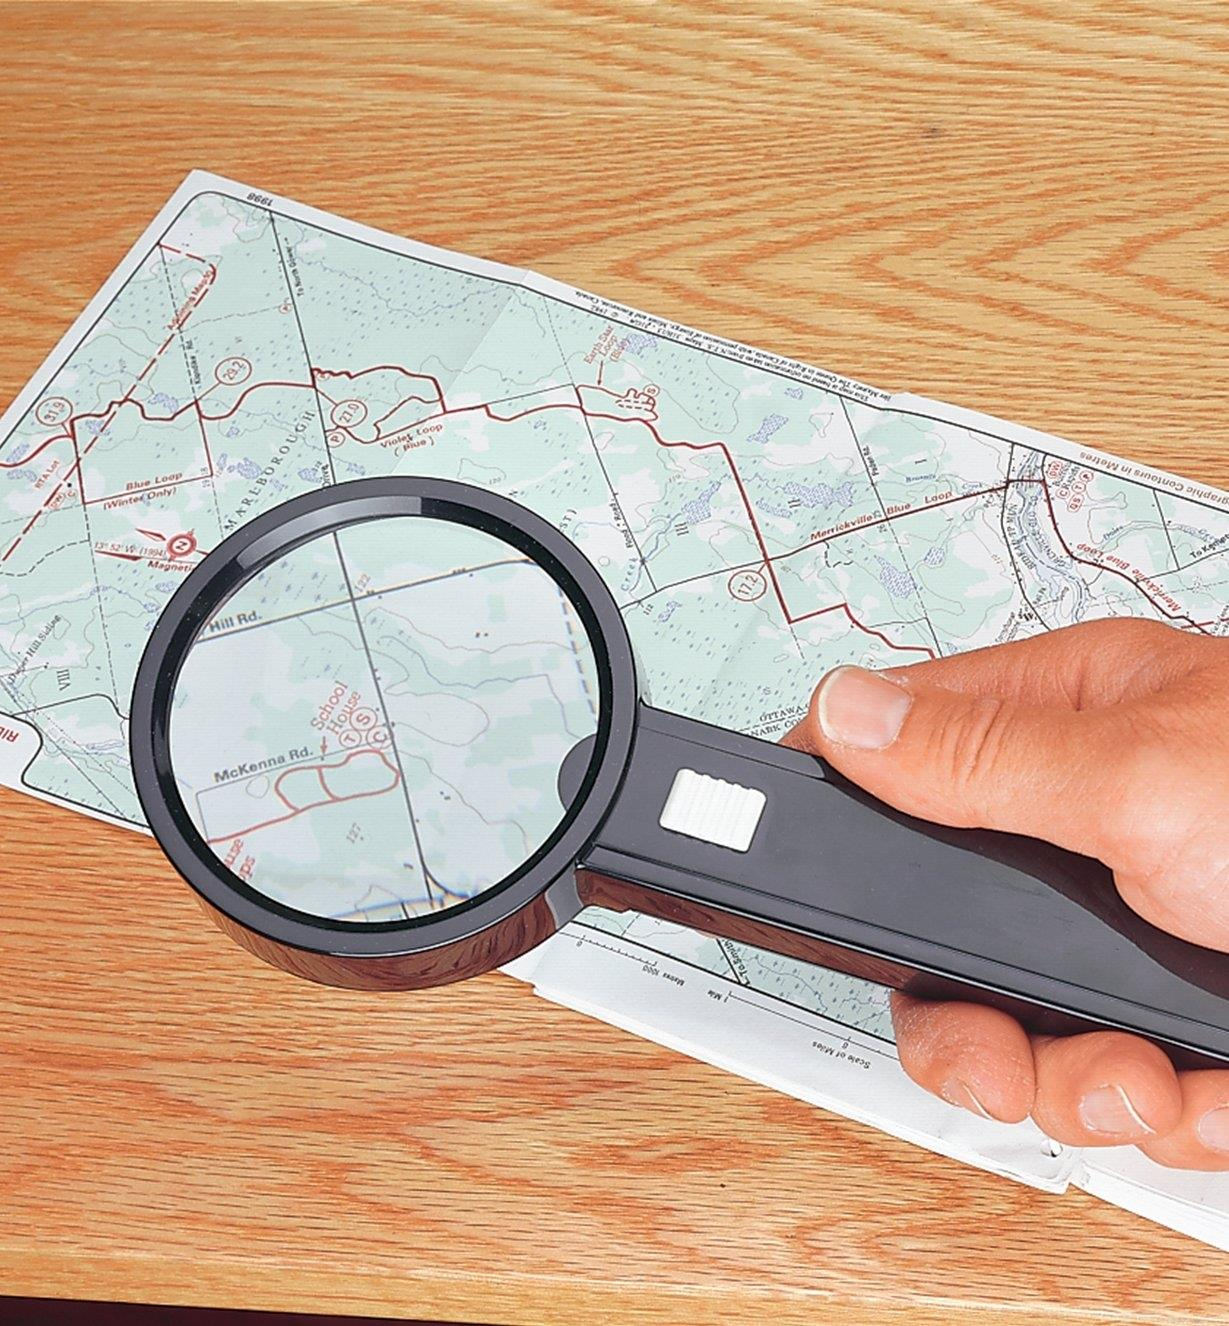 Magnifier Light being used to read a map